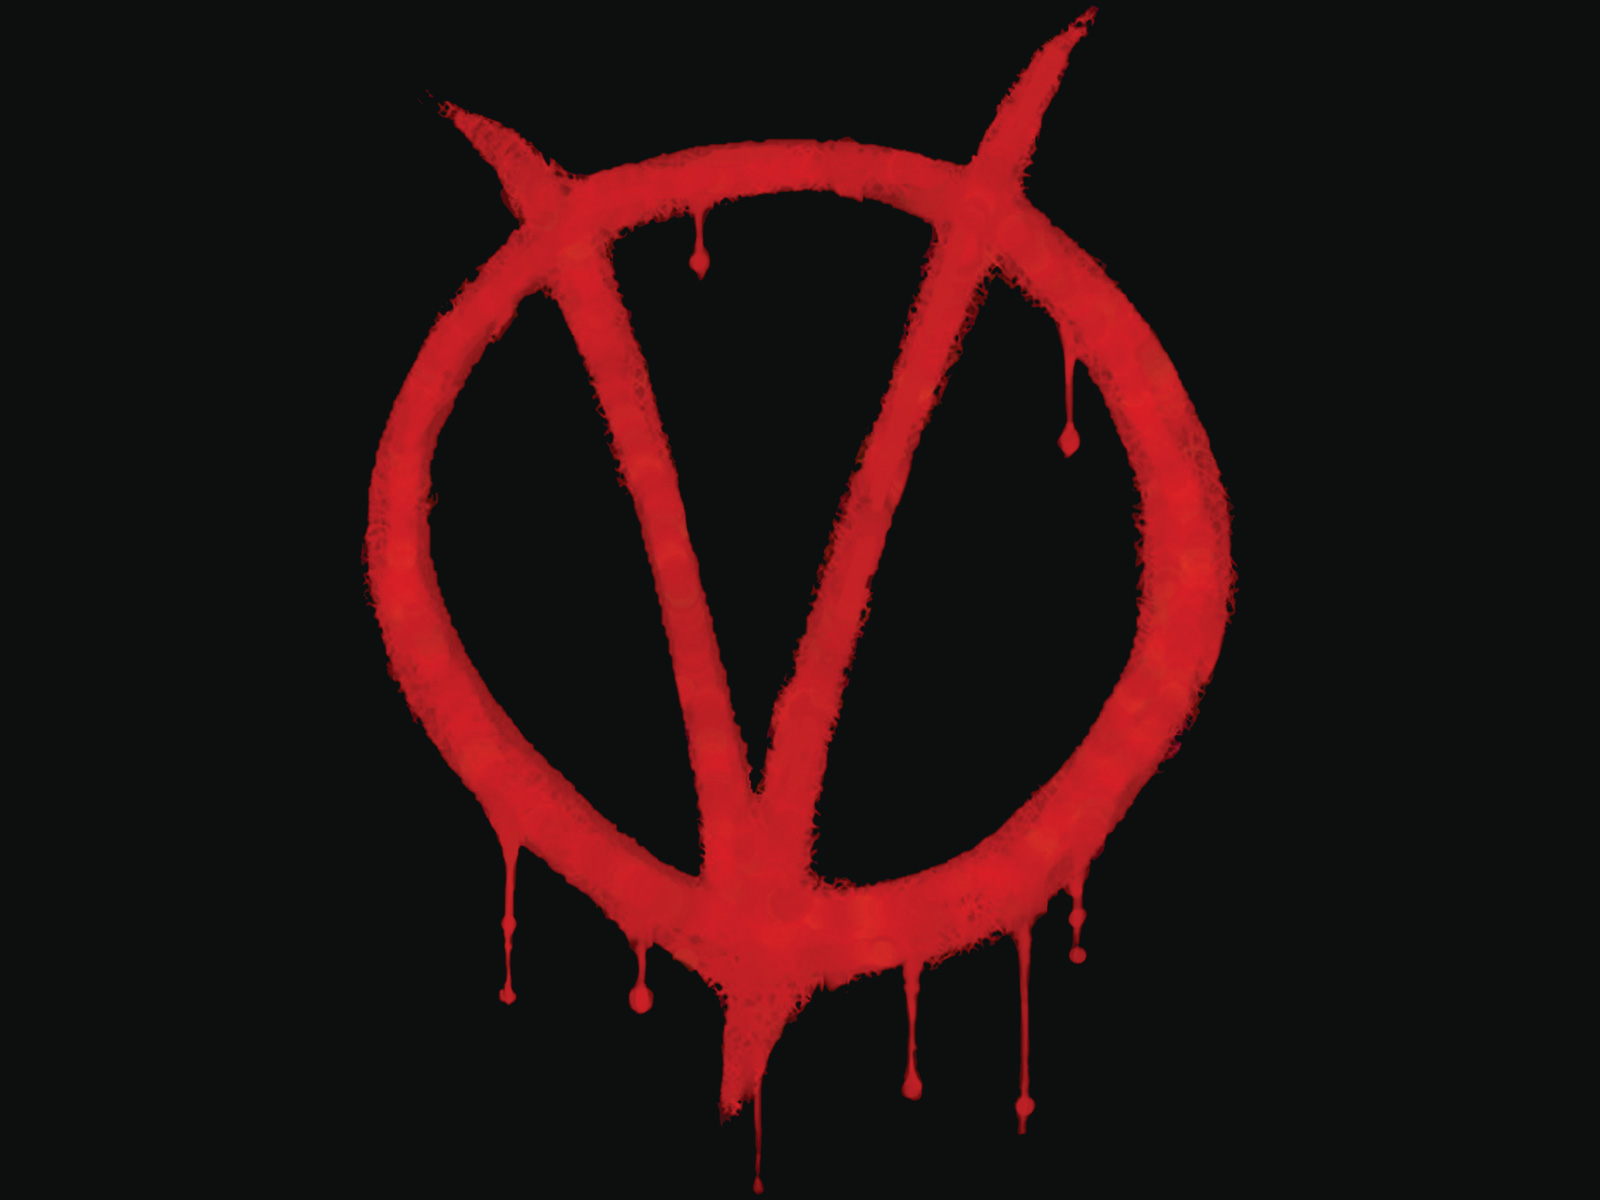 CHRISTIAN BALE TO STAR IN V FOR VENDETTA 2